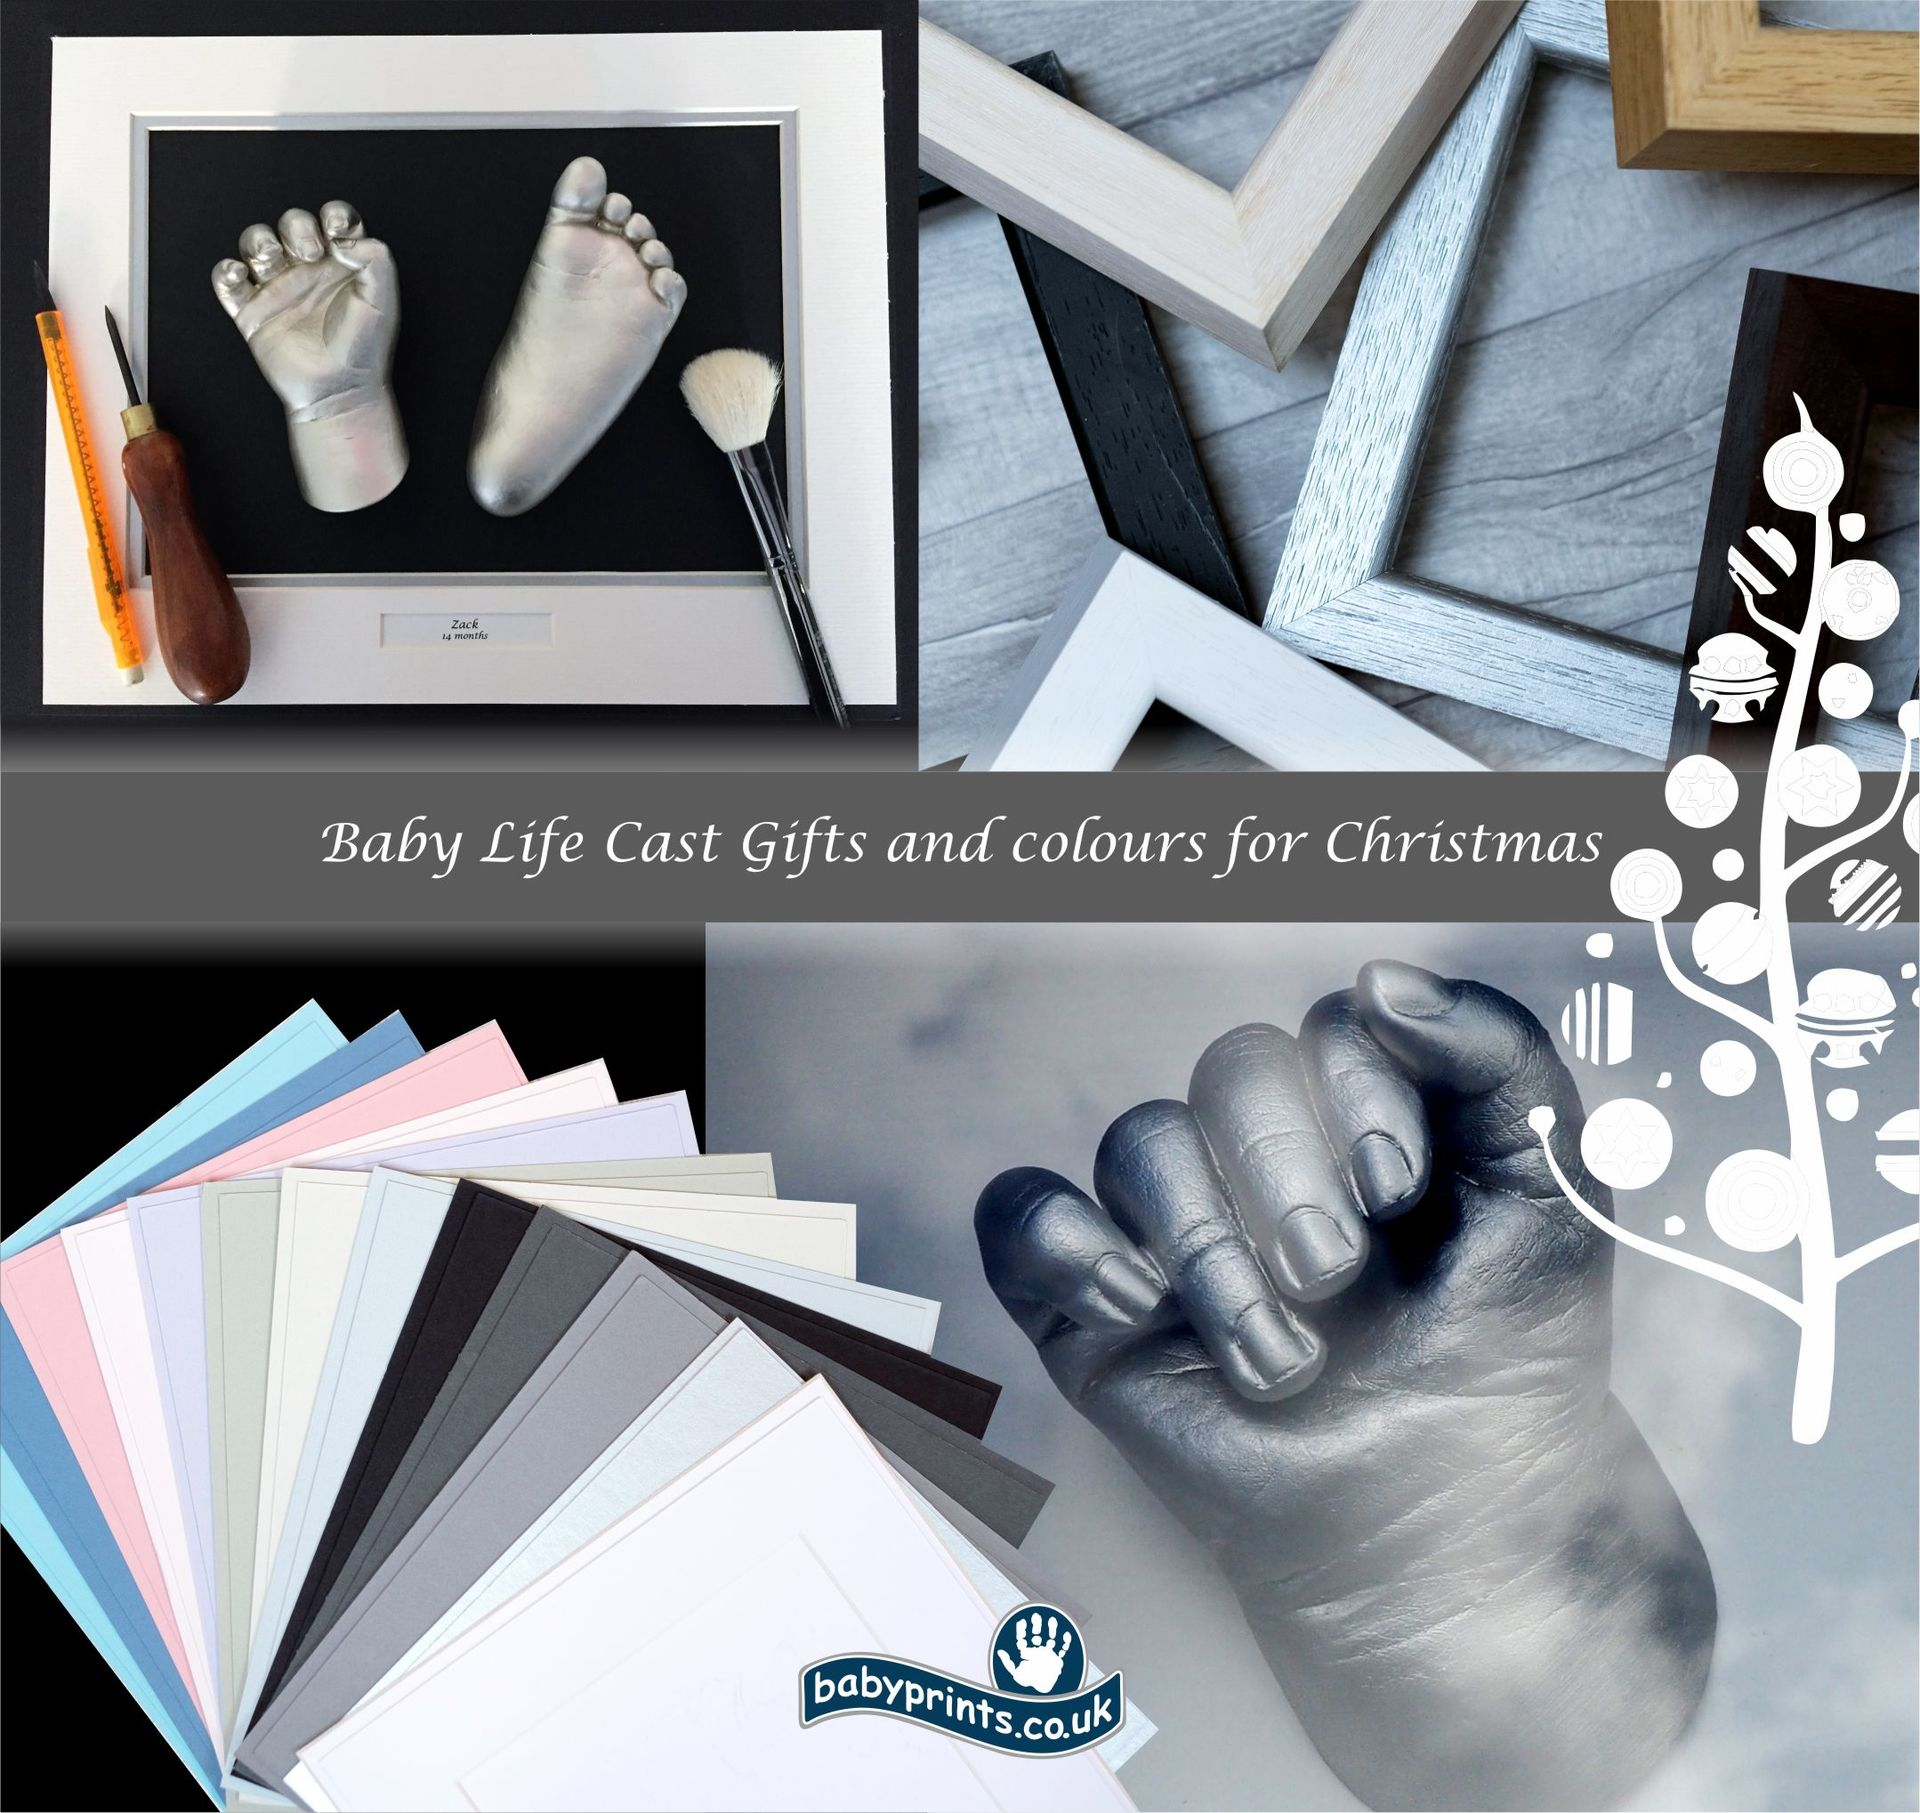 Christmas time out at Babyprints